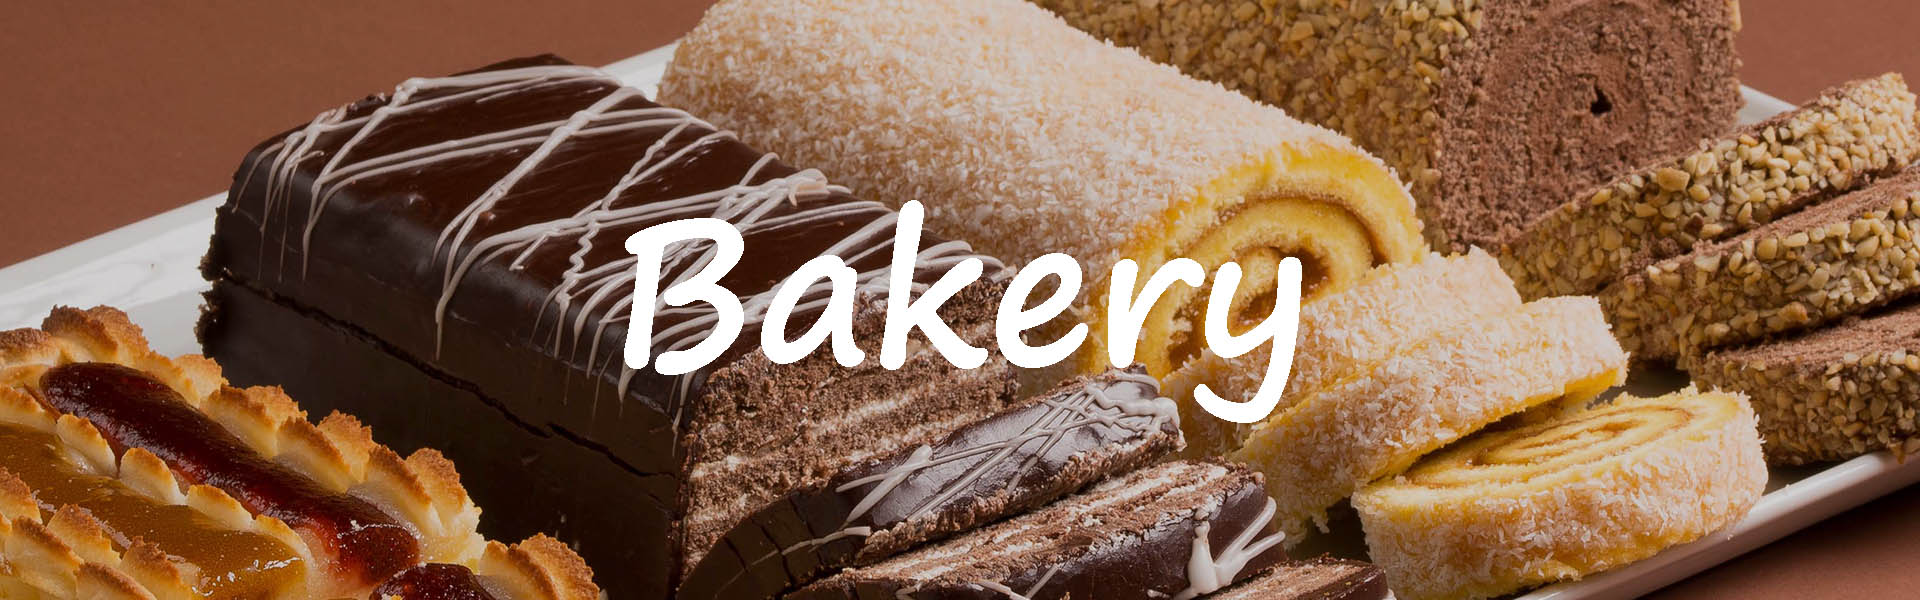 web-ready-bakery-3